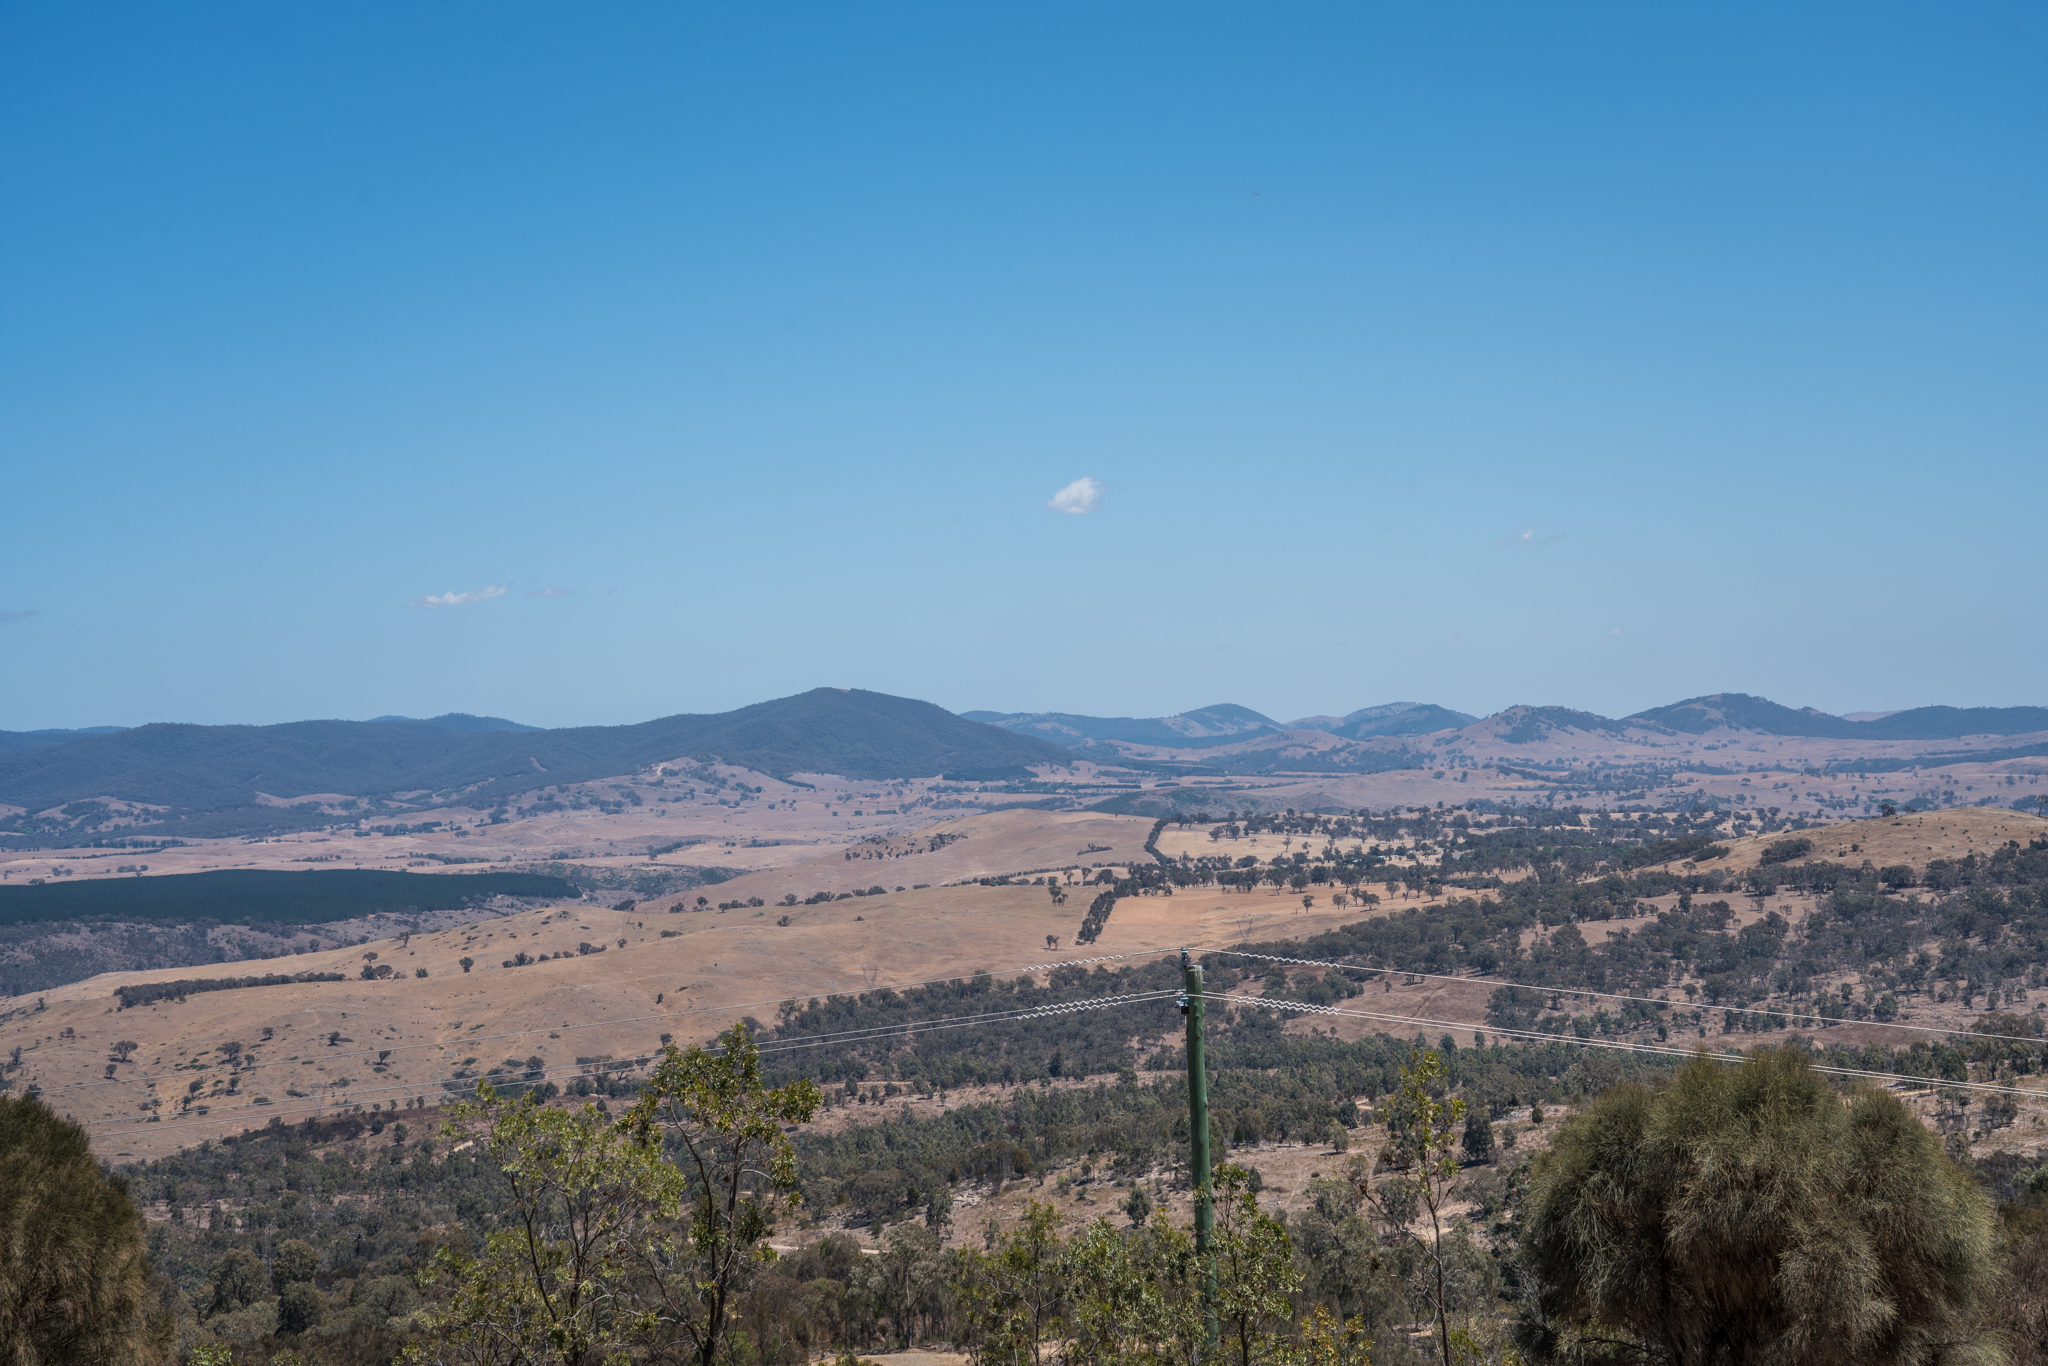 Wide-angle shot showing Brindabella mountain ranges off in the distance with open plains leading to us. Ground is dry and pale yellow in colour.